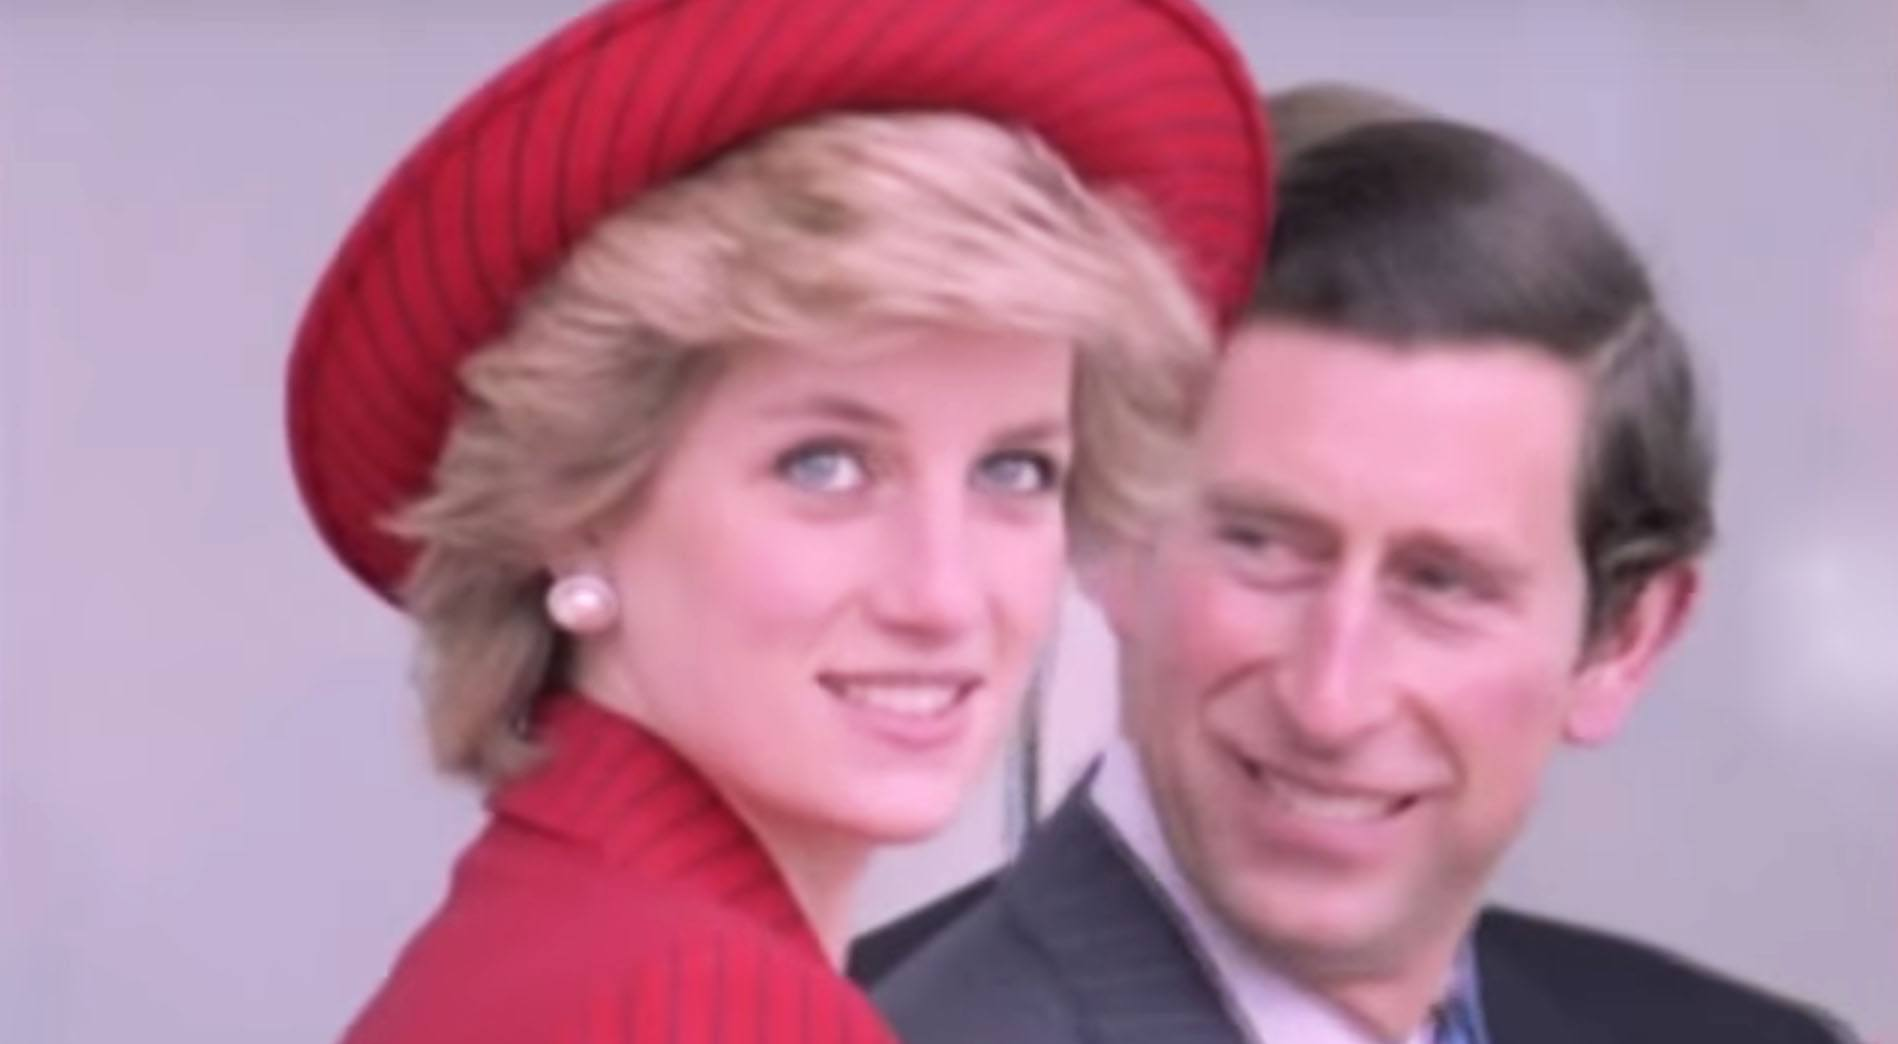 Princess diana and prince charles in vancouver at expo 86 in 1986 spuzzlightyeartoo youtube